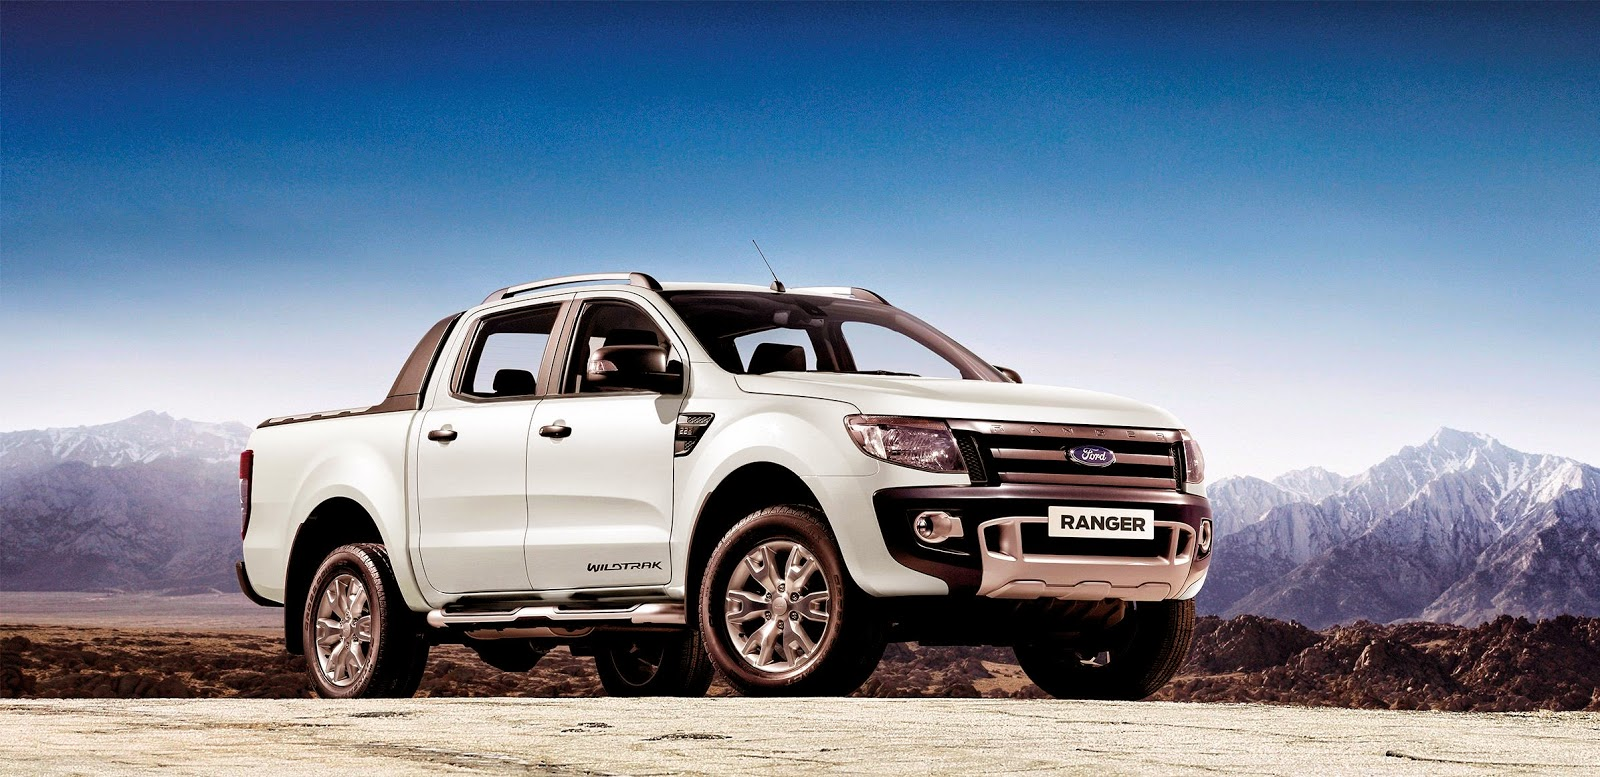 2015 Ford Ranger Ford welcomes new ranger